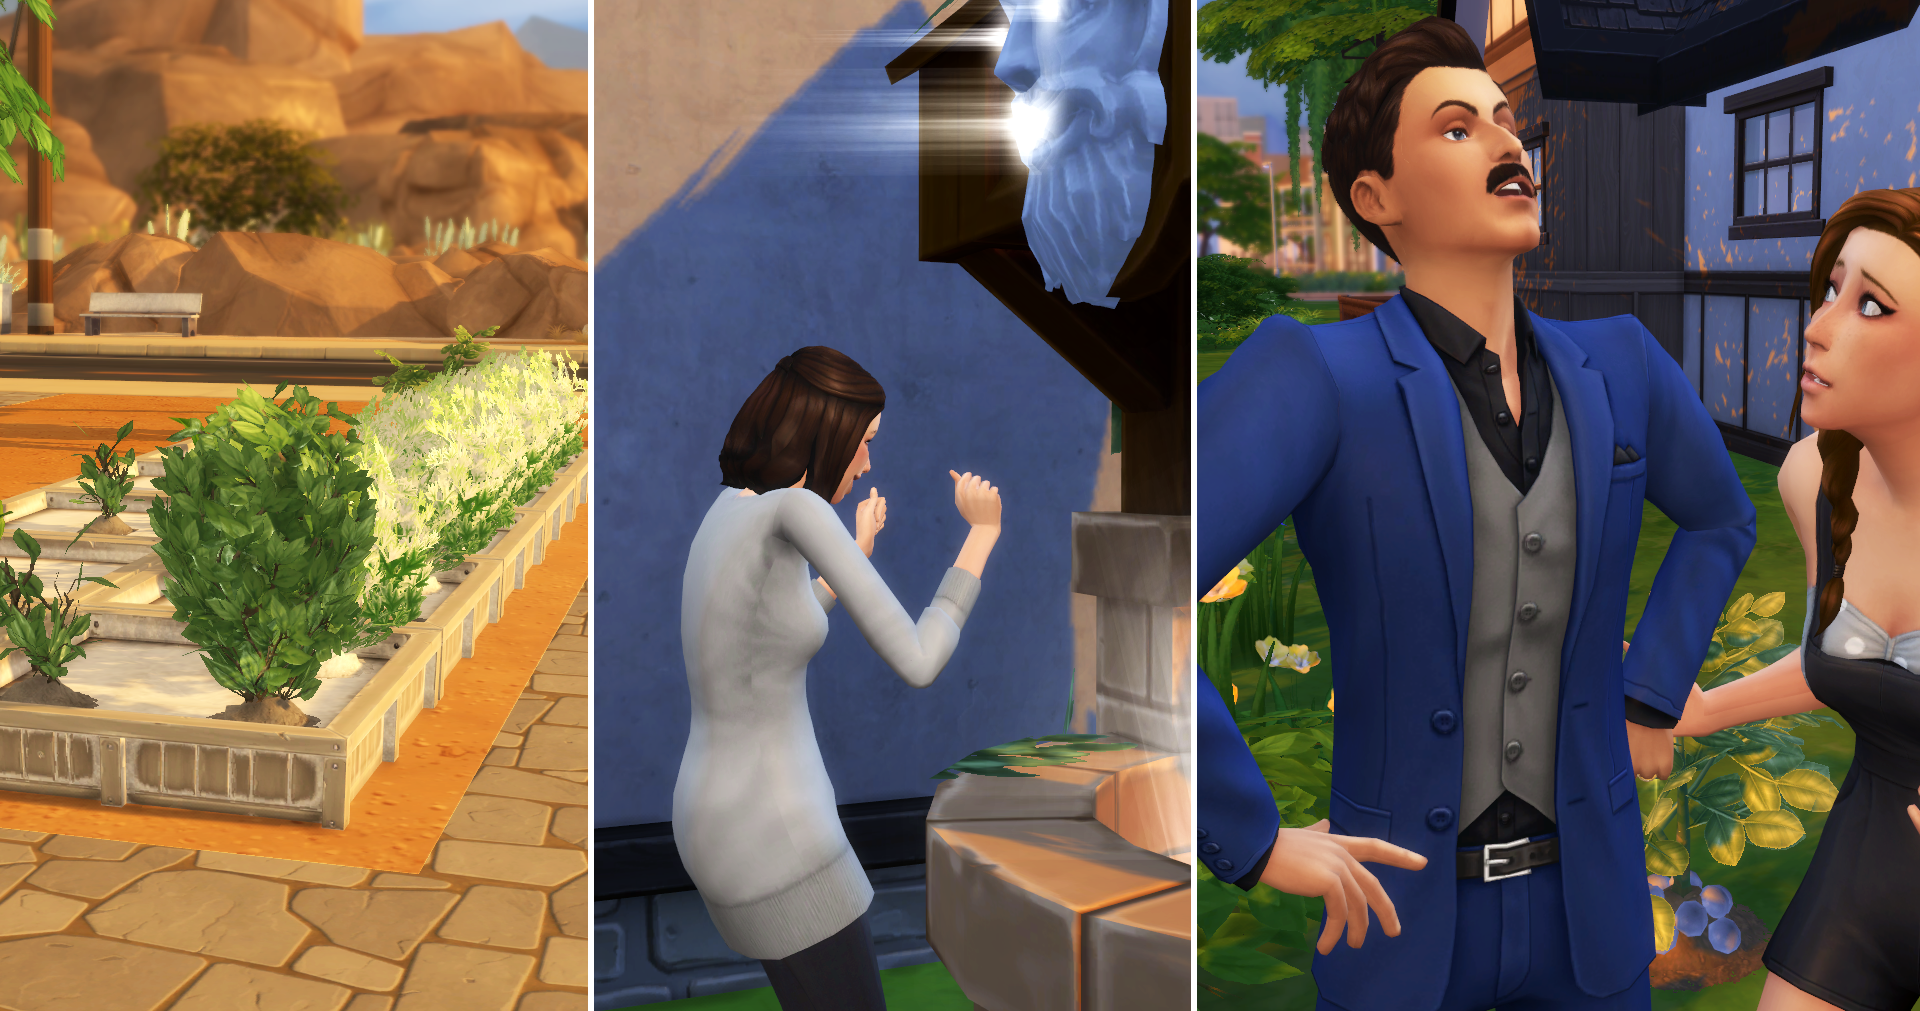 sims 4 money cheat before moving in